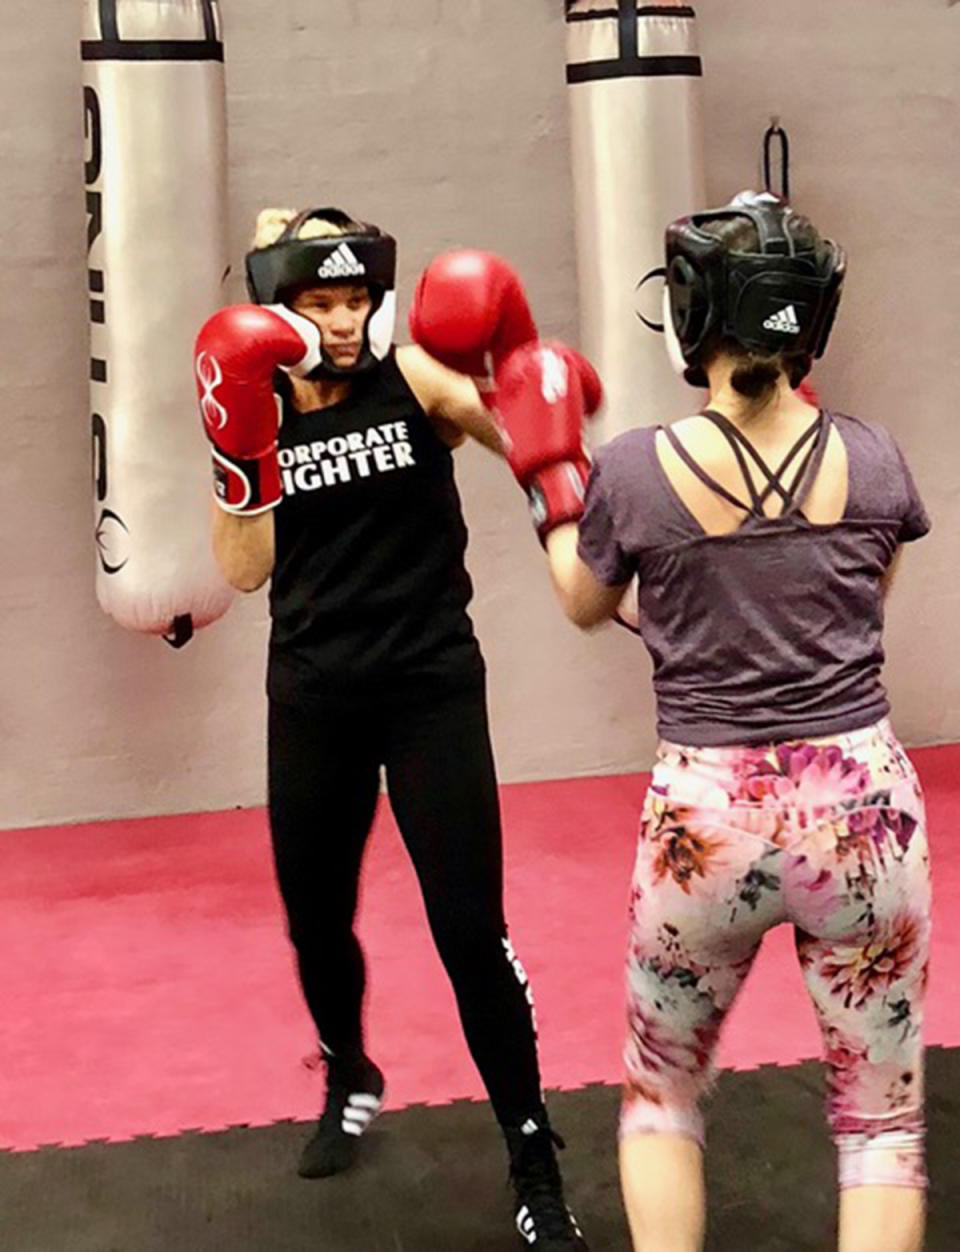 A photo of Sydney woman Maria boxing with another woman in a gym